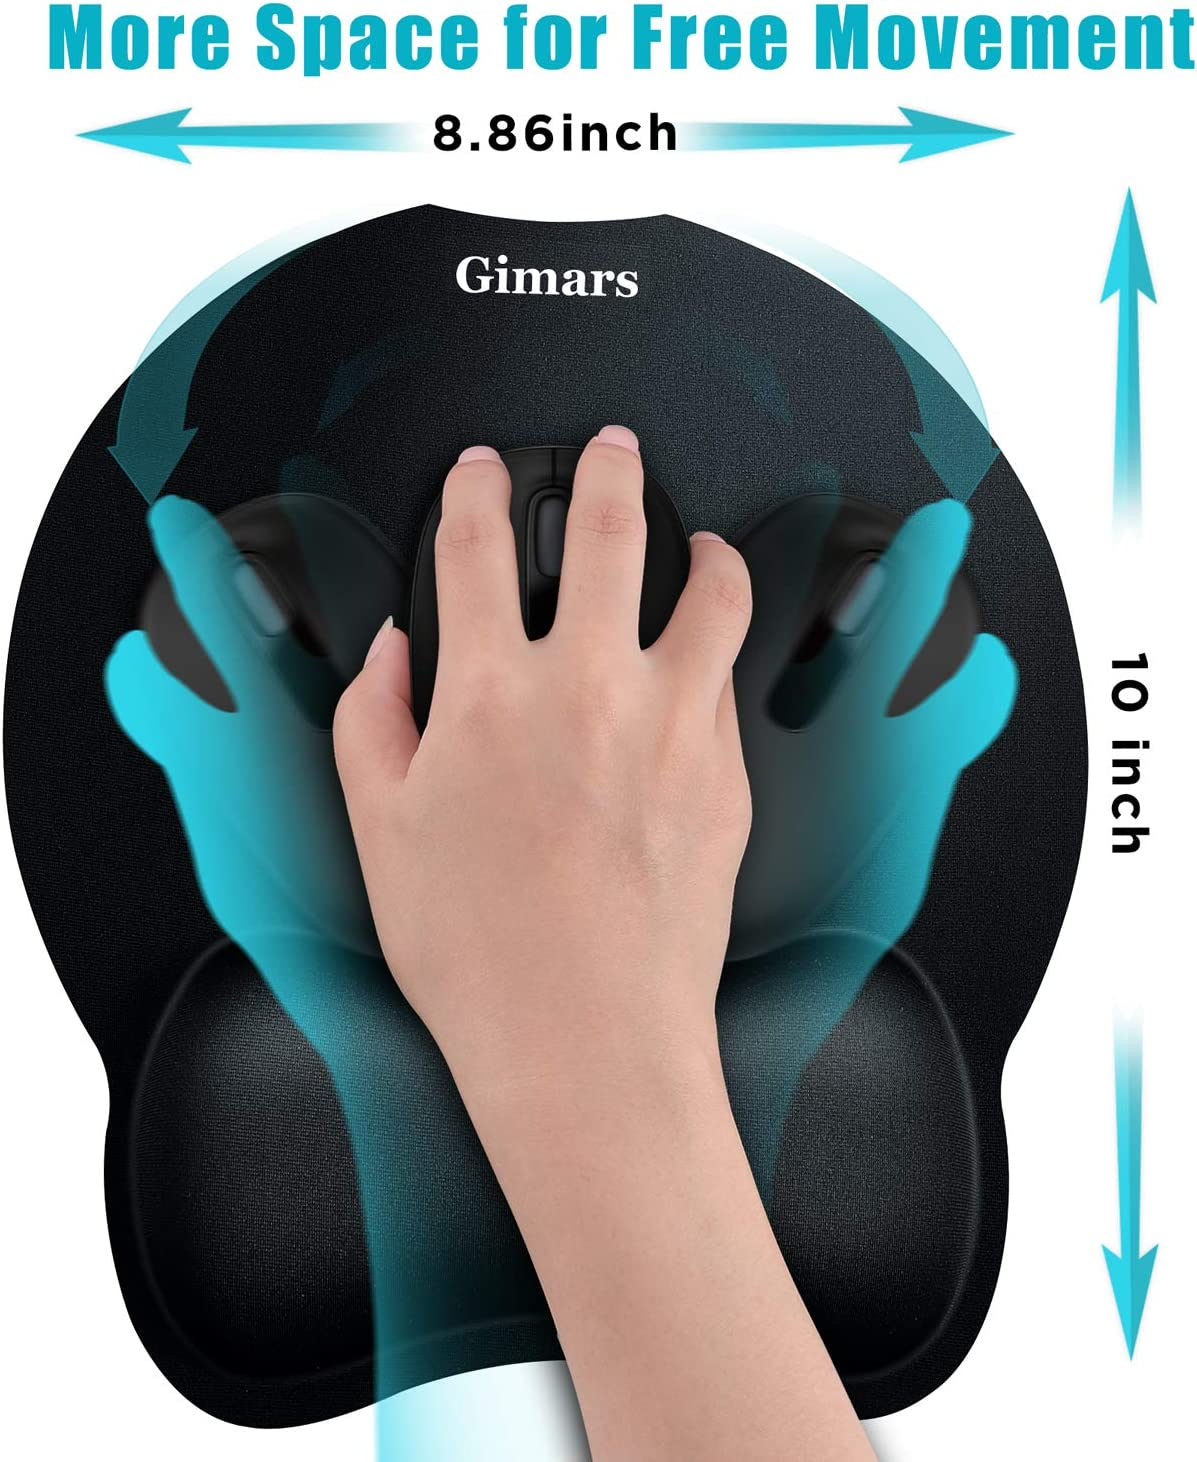 Gimars Upgrade Round Smooth Superfine Fibre Memory Foam Mouse Pad Wrist Rest Support - Ergonomic Mousepad with Nonslip Base for Laptop, Computer, Gaming, Office - Comfortable for Typing & Pain Relief : Office Products